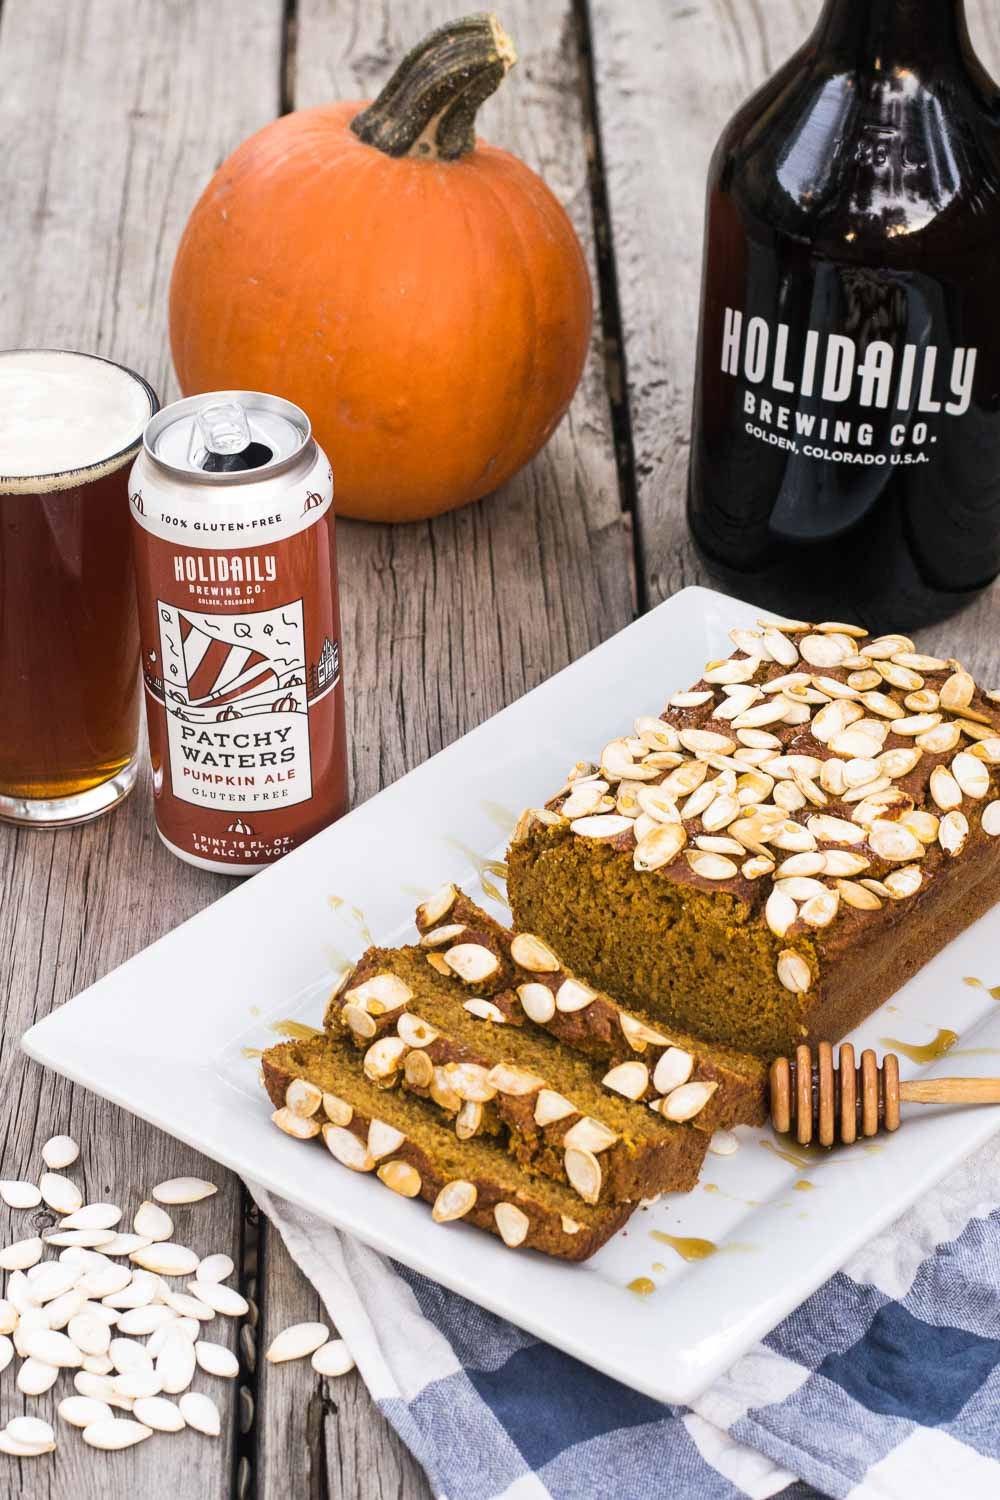 Celebrating Great American Beer Festival with craft beer recipes from Golden, Colorado! Let's spice up gluten-free beer bread with pumpkin, maple syrup, & cinnamon to welcome fall.